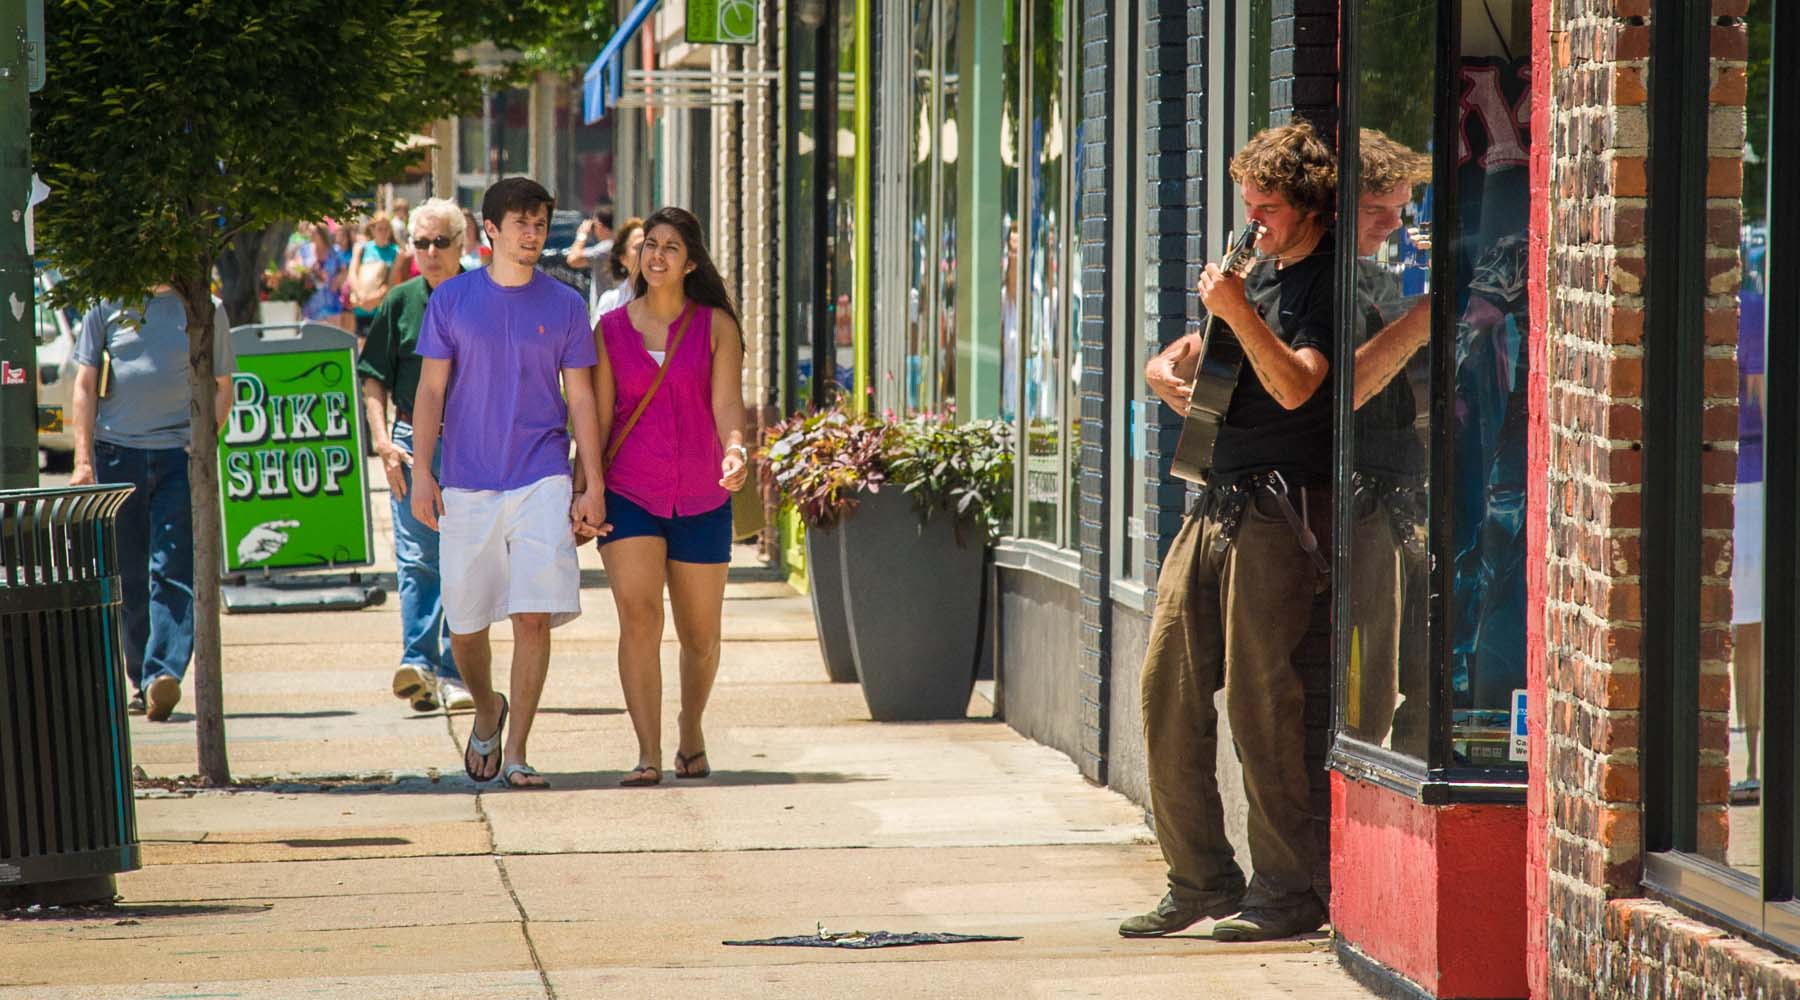 Pedestrians walk past a musician playing guitar on Cary St.